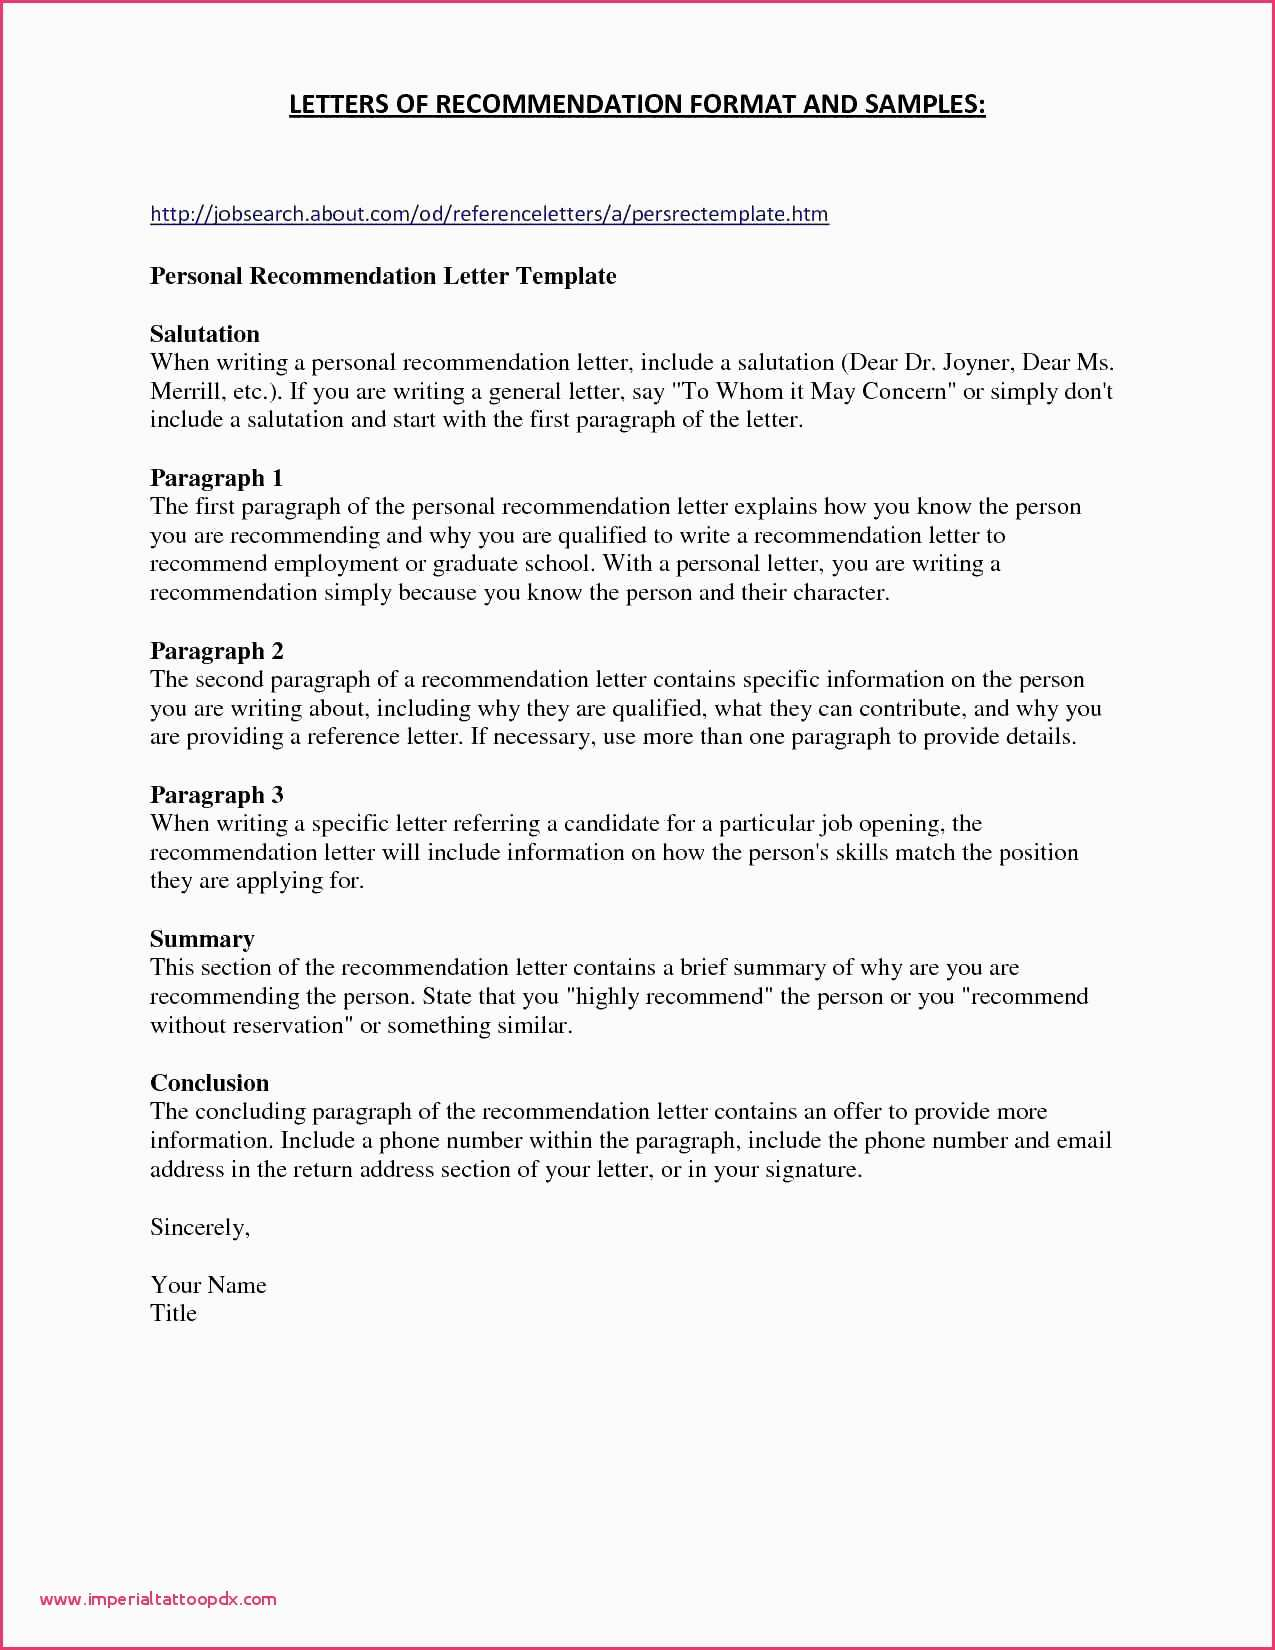 Resume Generator Free - Free Resume Generator Line Beautiful Best Resume Maker Awesome